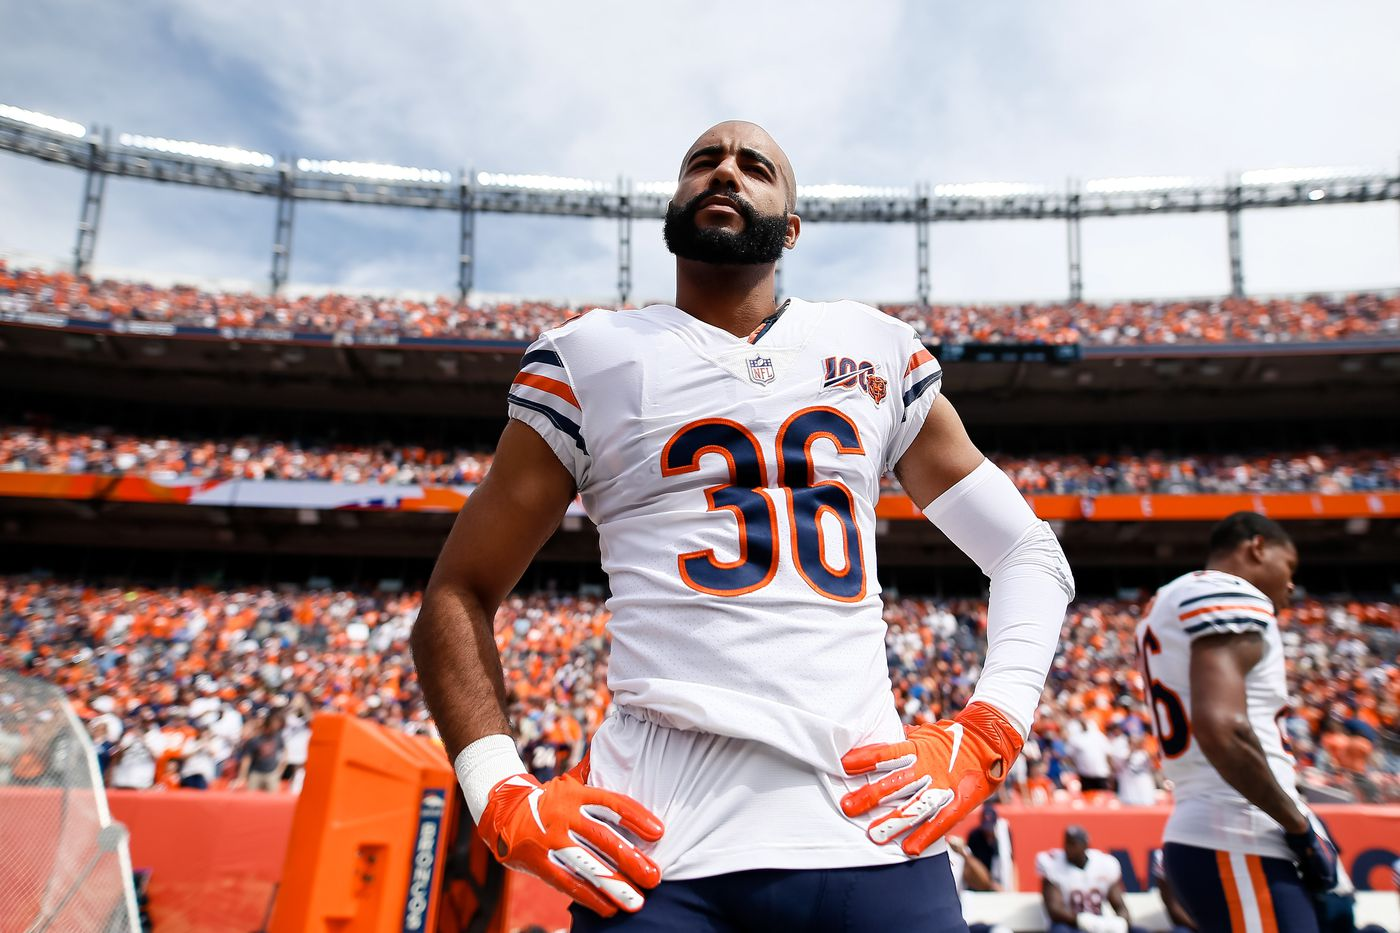 DeAndre Houston-Carson is back with the Bears - Windy City Gridiron